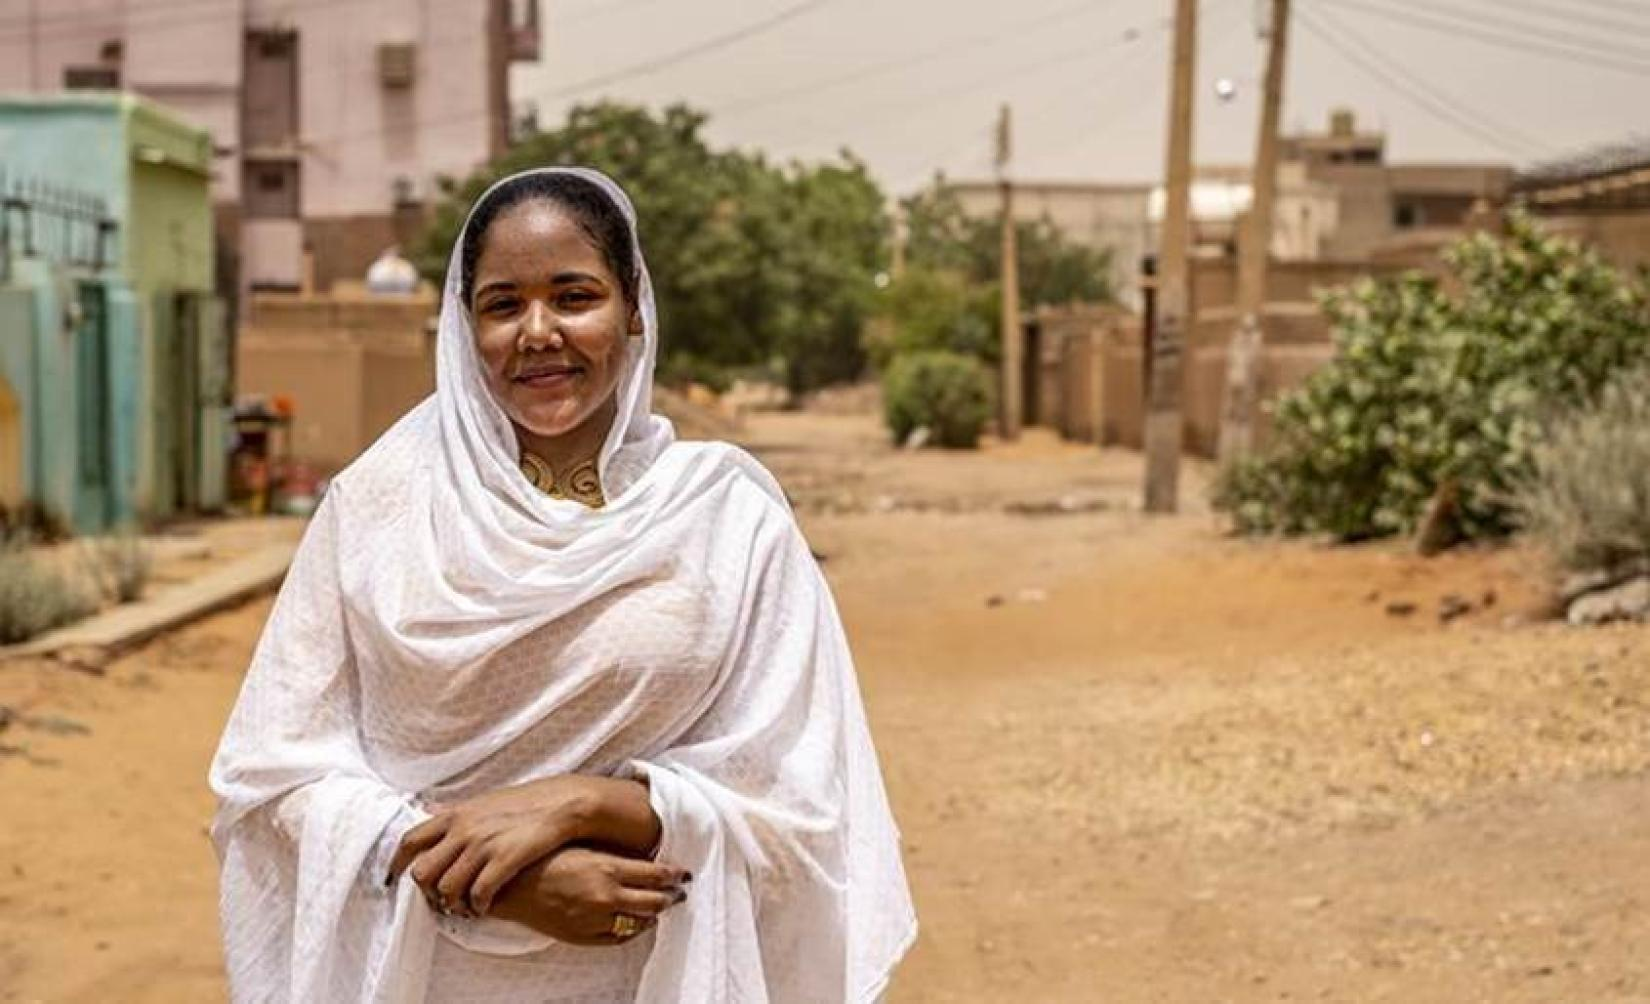 Roaa Bakri Bilal, women's rights activist and political hopeful, North Khartoum